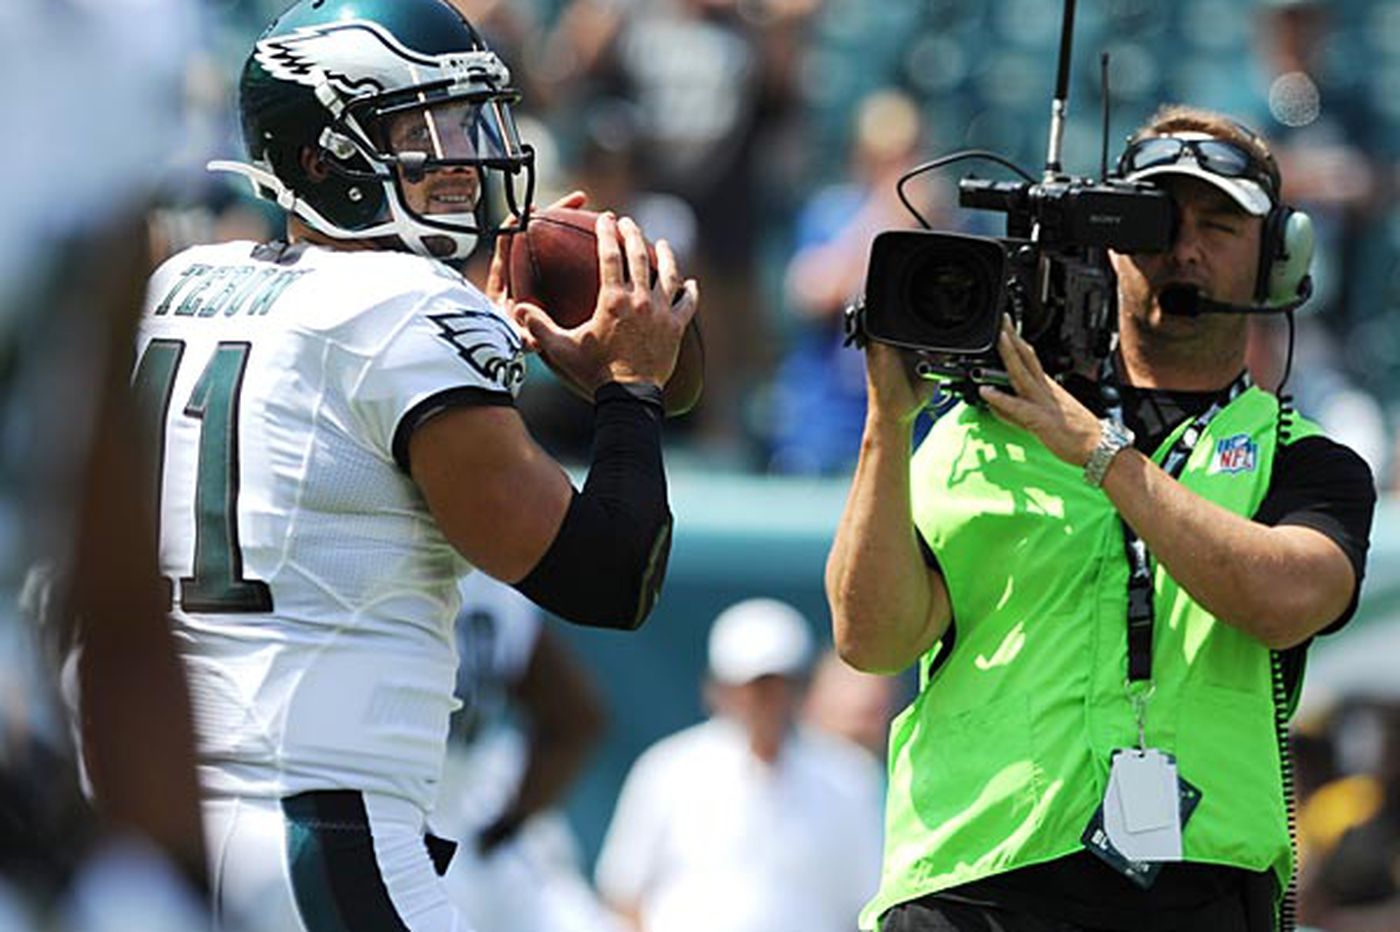 Tebowmania could descend upon Eagles on Sunday